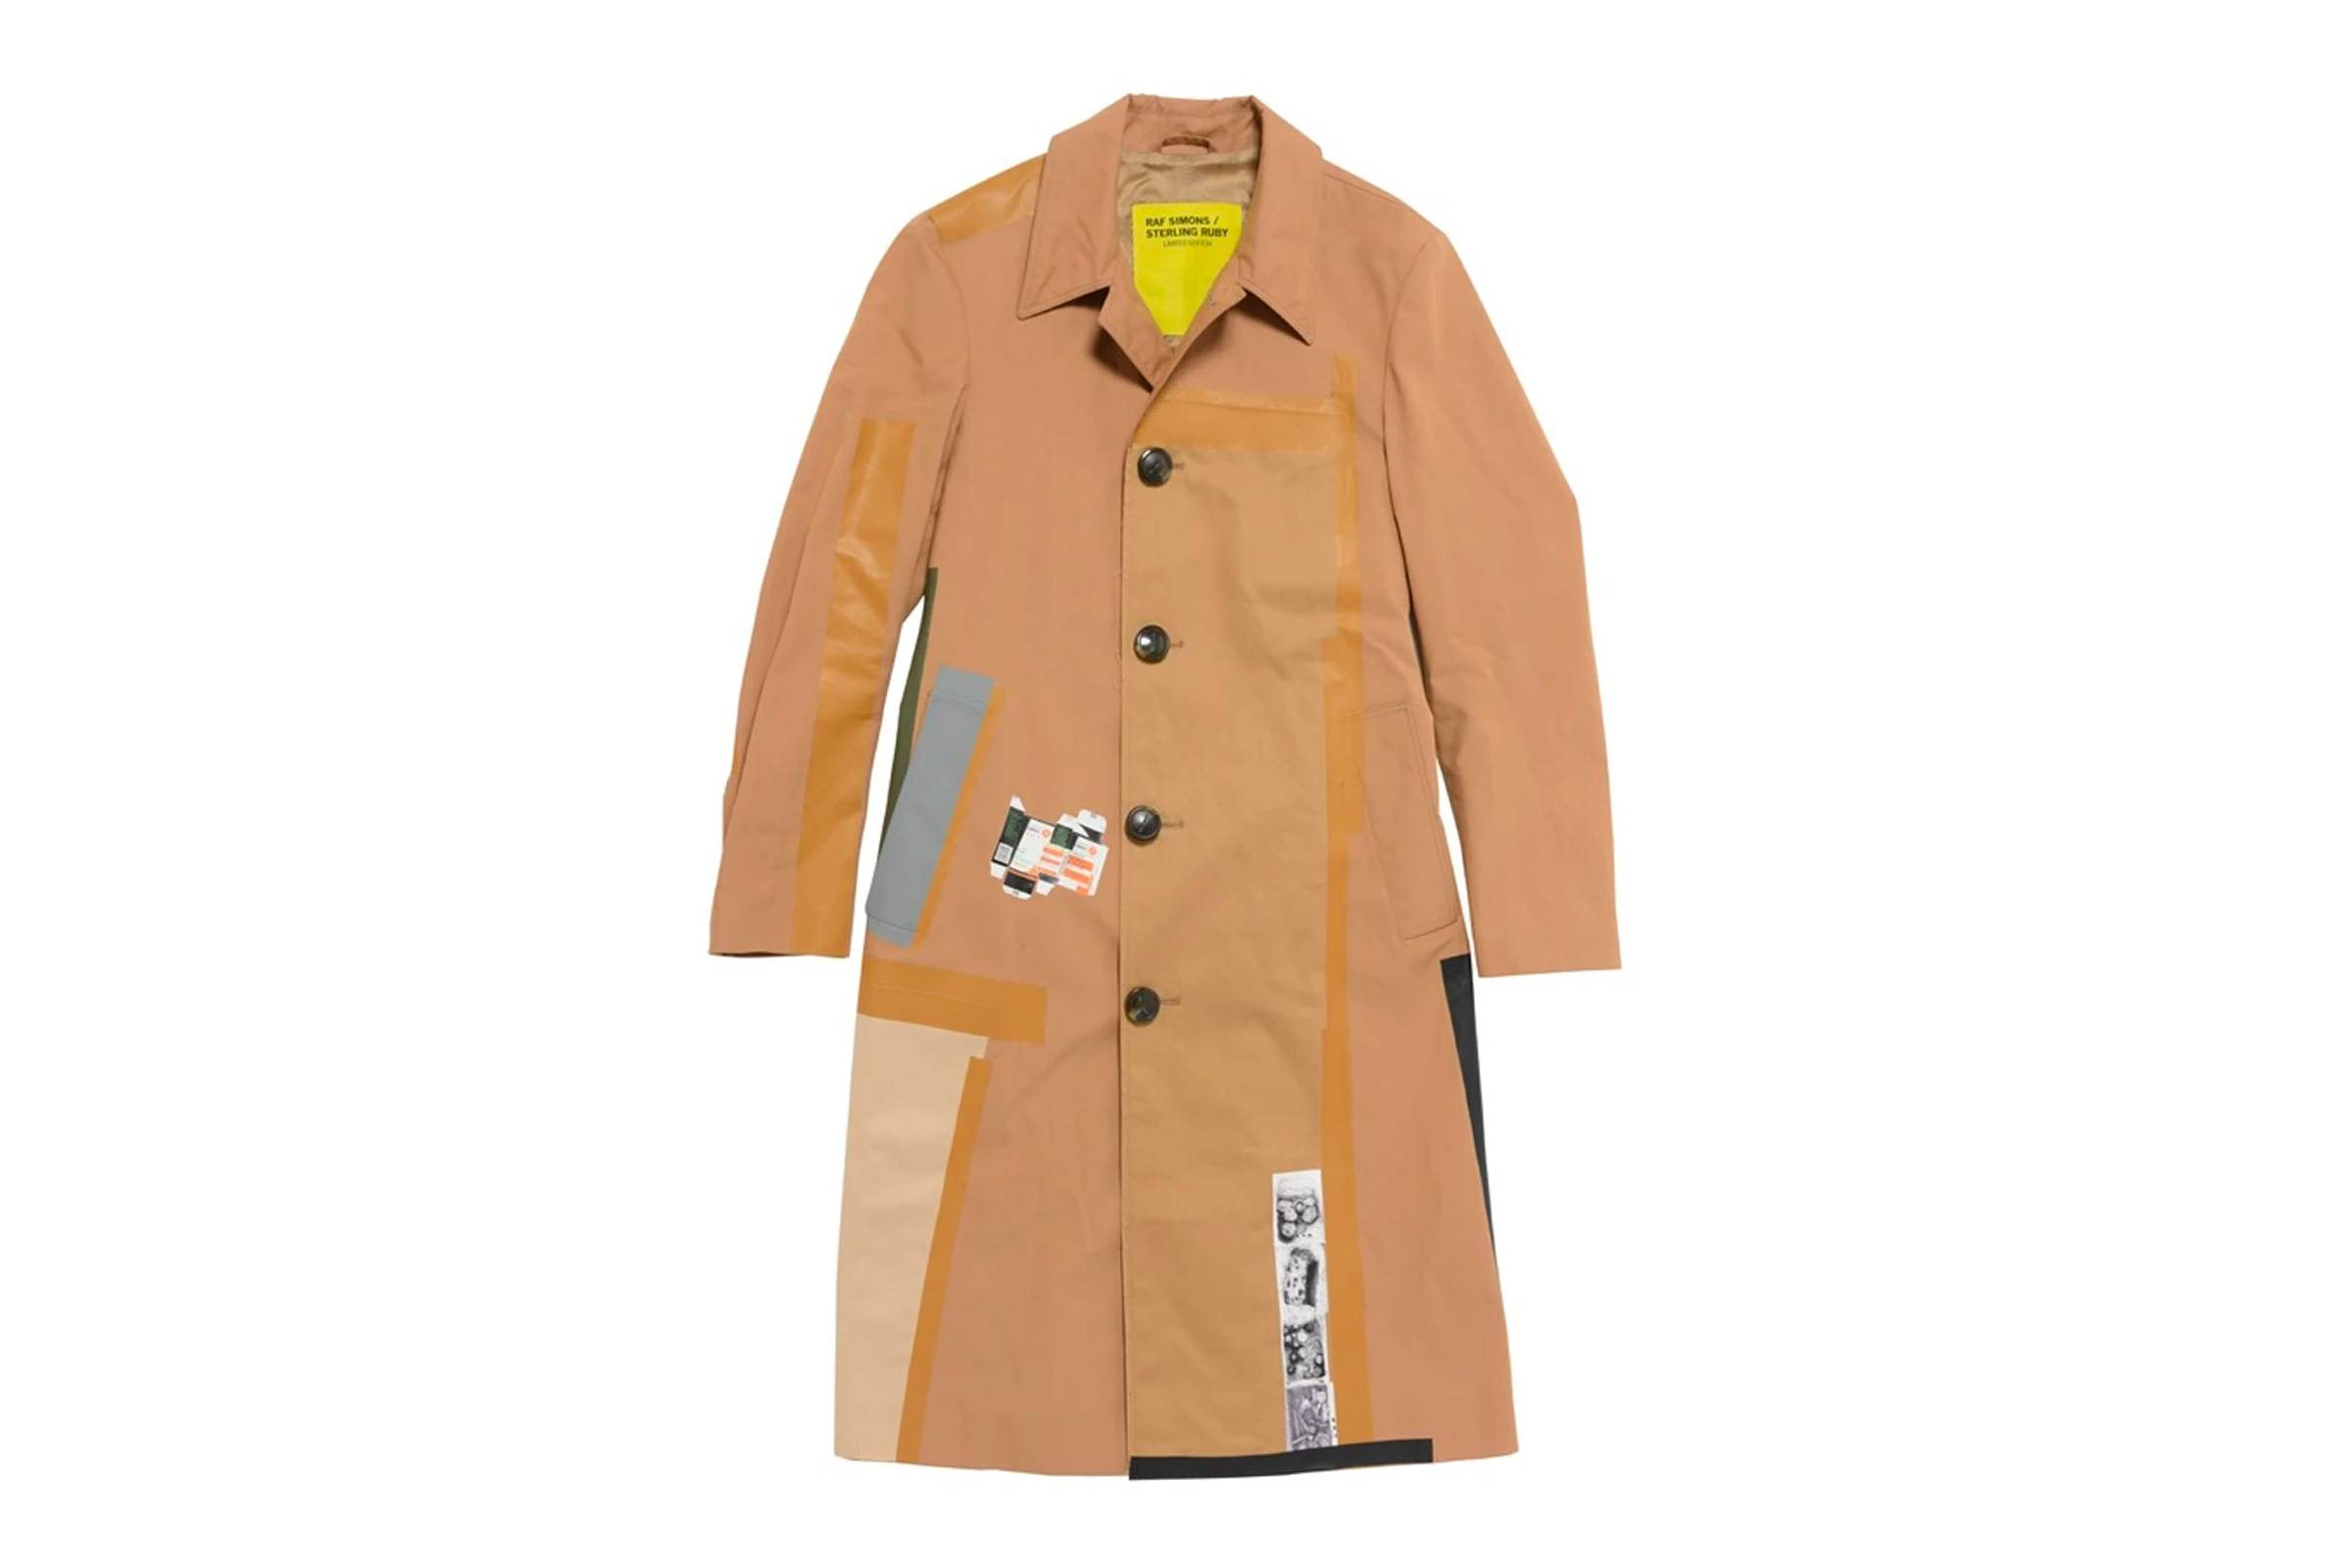 Raf Simons x Sterling Ruby Collage Trench Coat